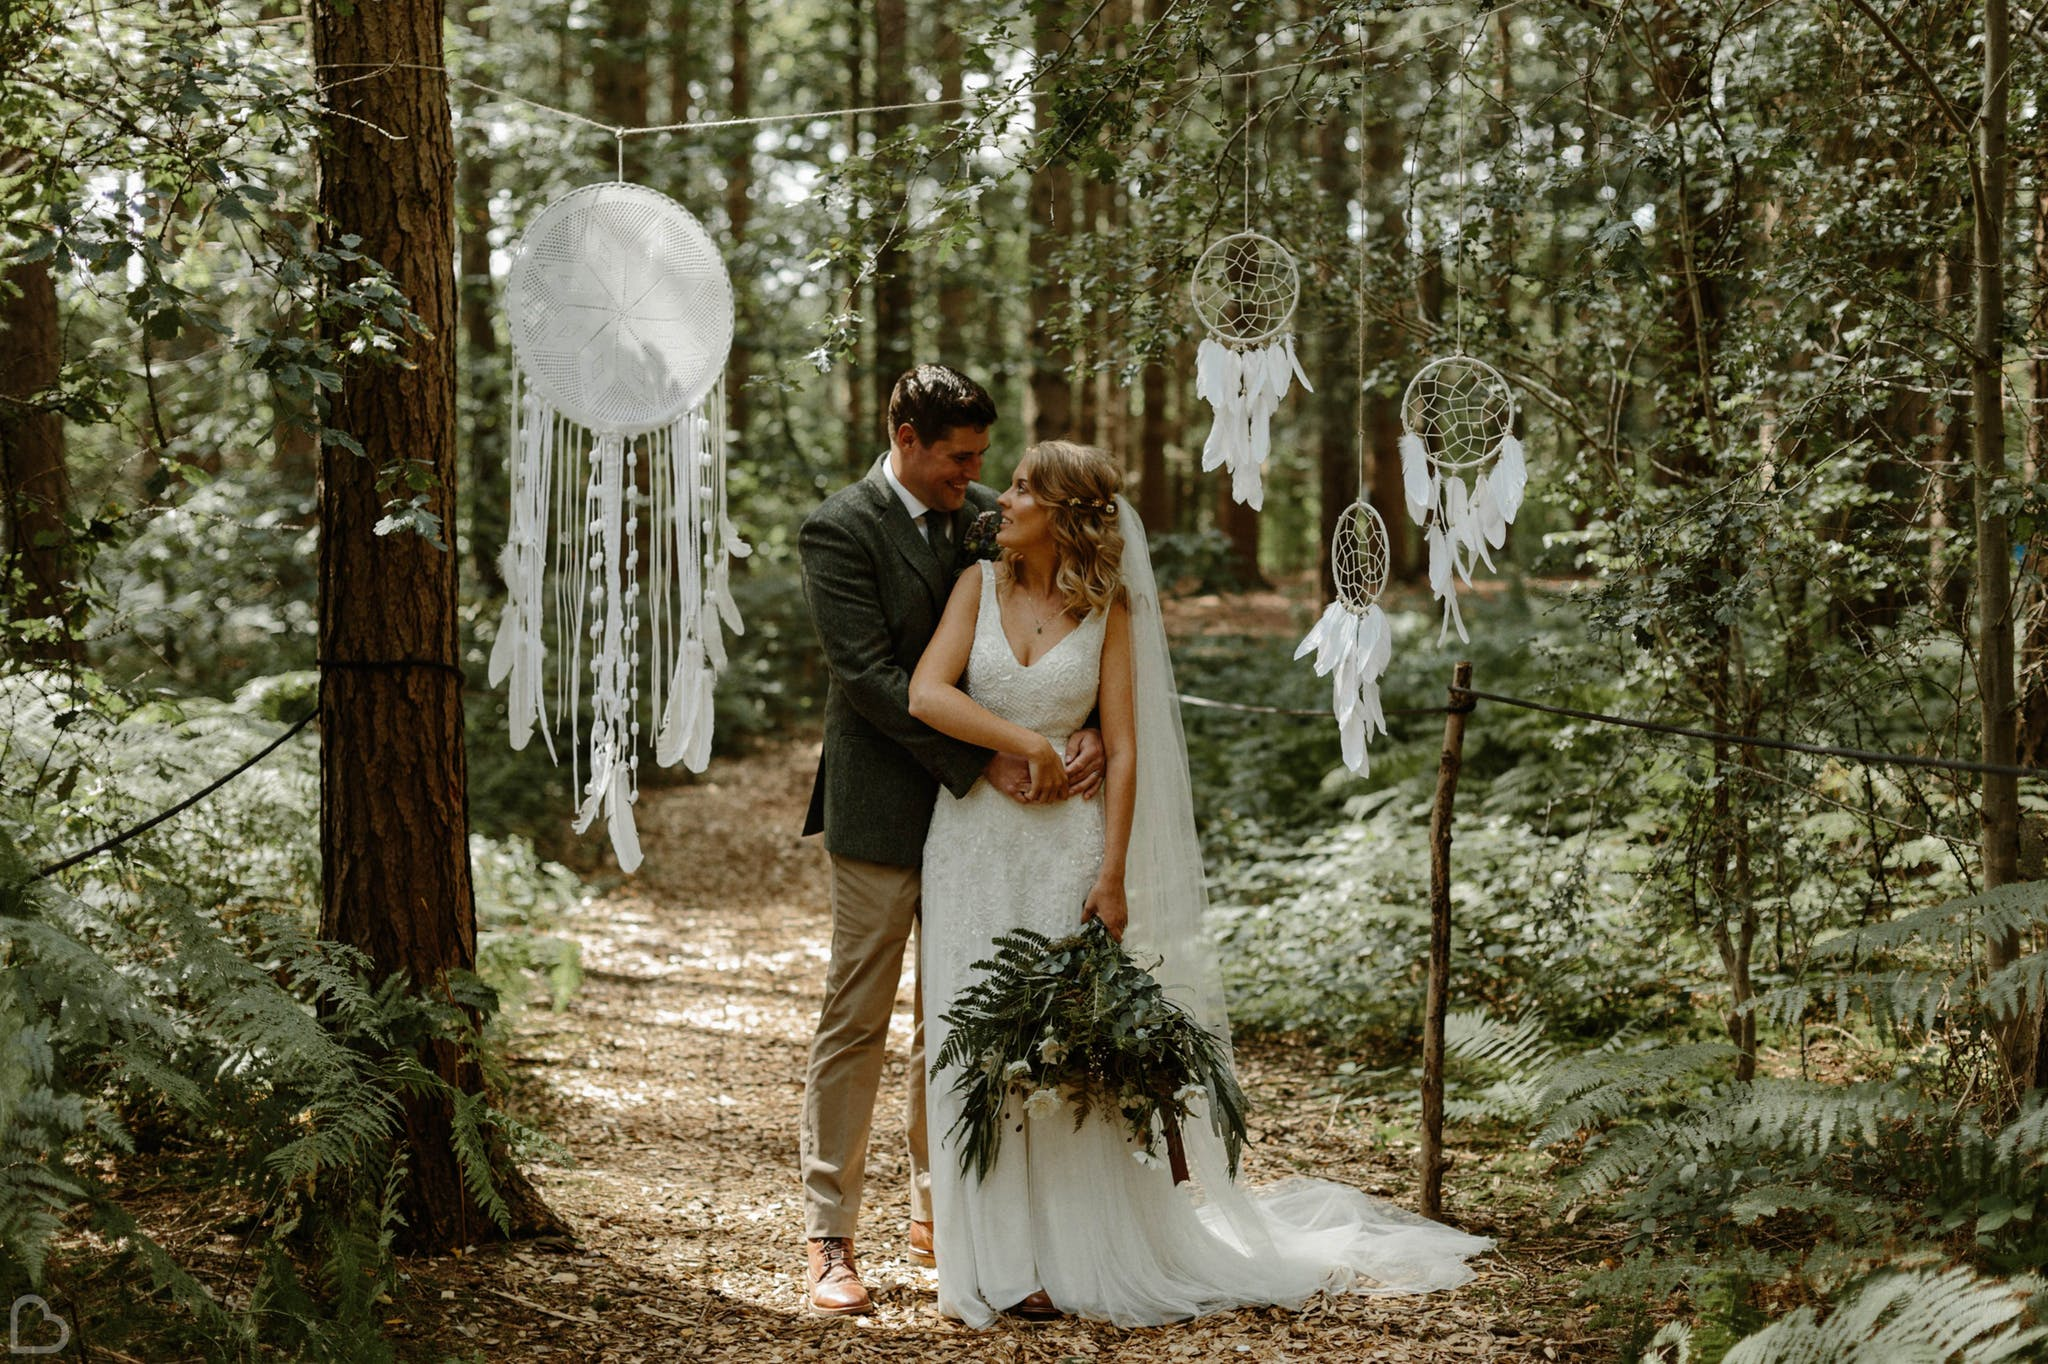 Happy couple getting married outdoors at Camp Katur Woodland Wedding Venue